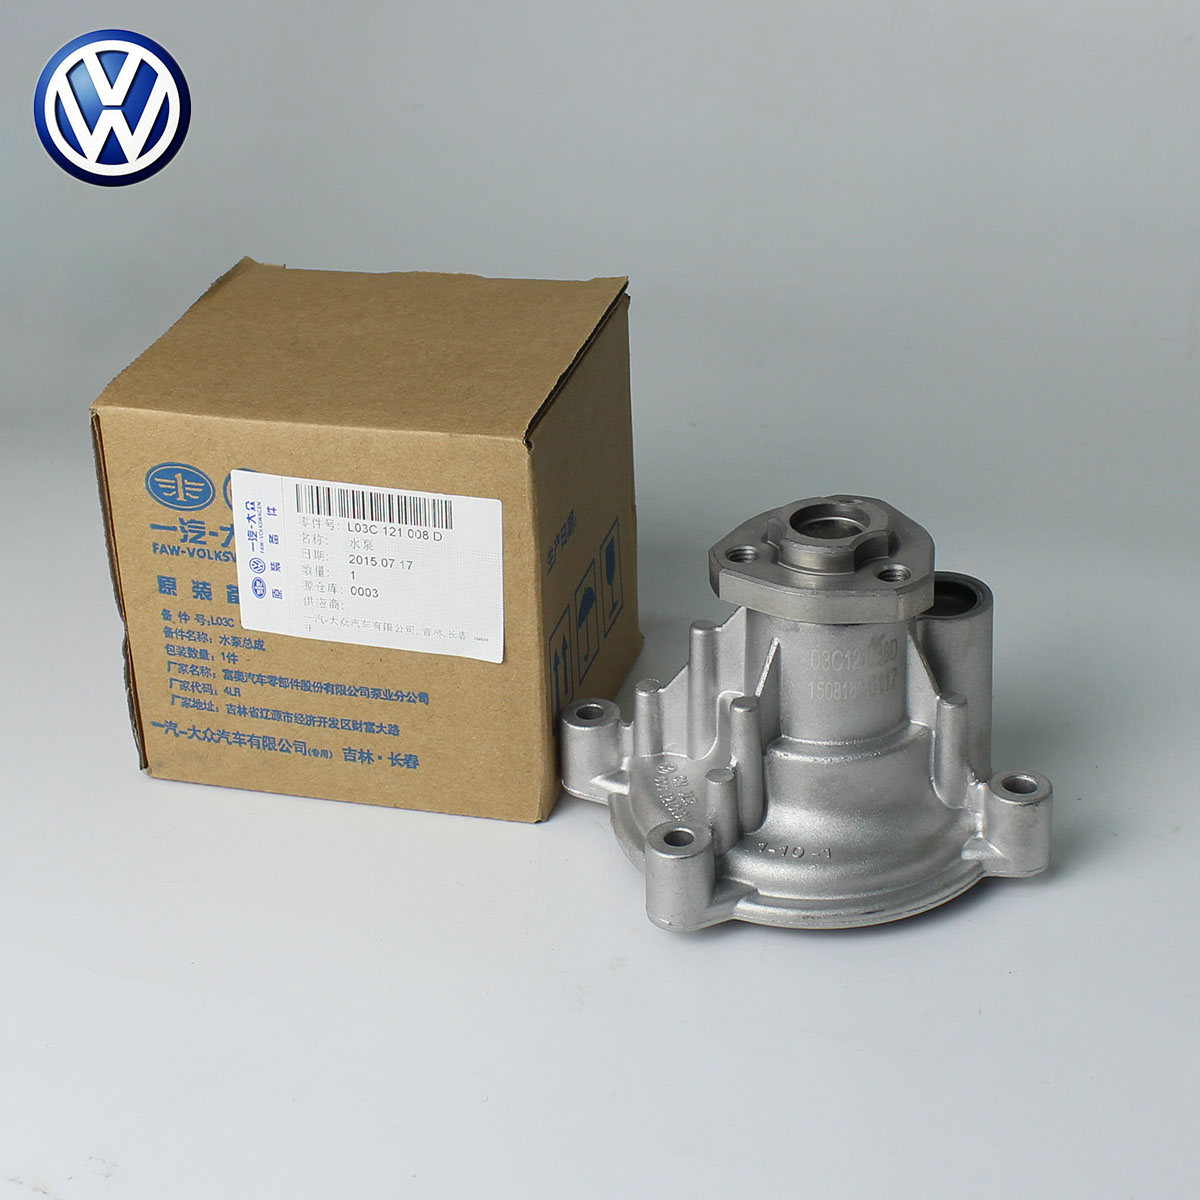 Car Engine Auxiliary Cooling Circulating Water Pump 03C 121 008 D For VW Golf MK6 Passat B6 B7 Jetta MK5 MK6 water pump for d905 engine utility vehicle rtv1100cw9 rtv100rw9